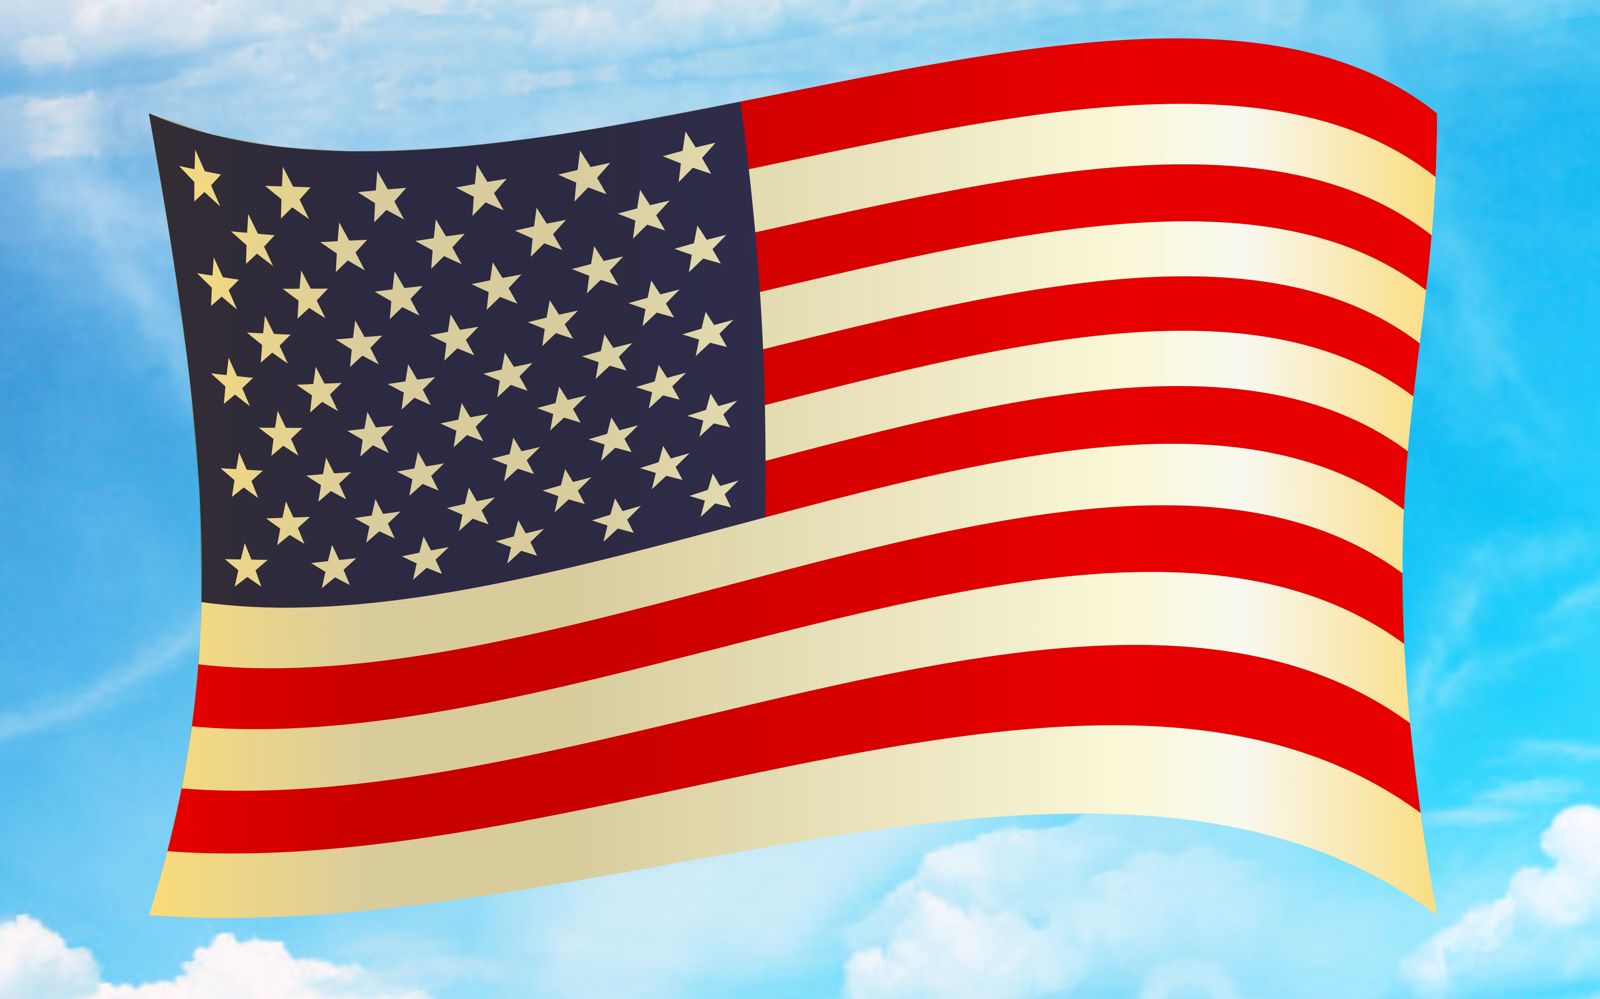 Free stock photo 9055 american flag freeimageslive - Uk flag images free ...